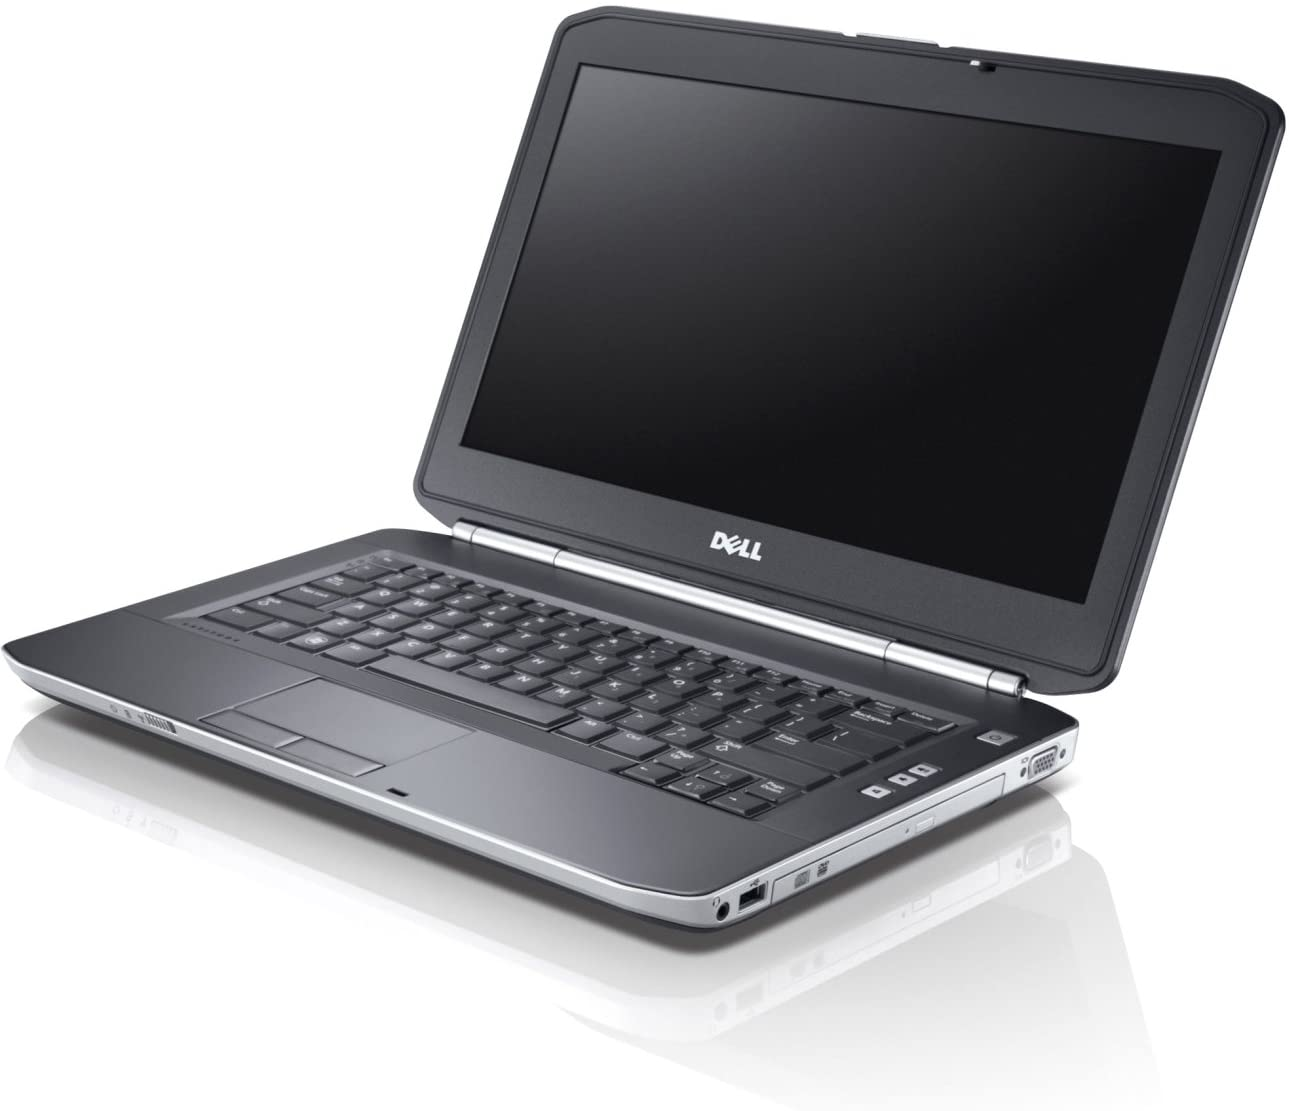 14-inch Dell Latitude E5430 Laptop Image